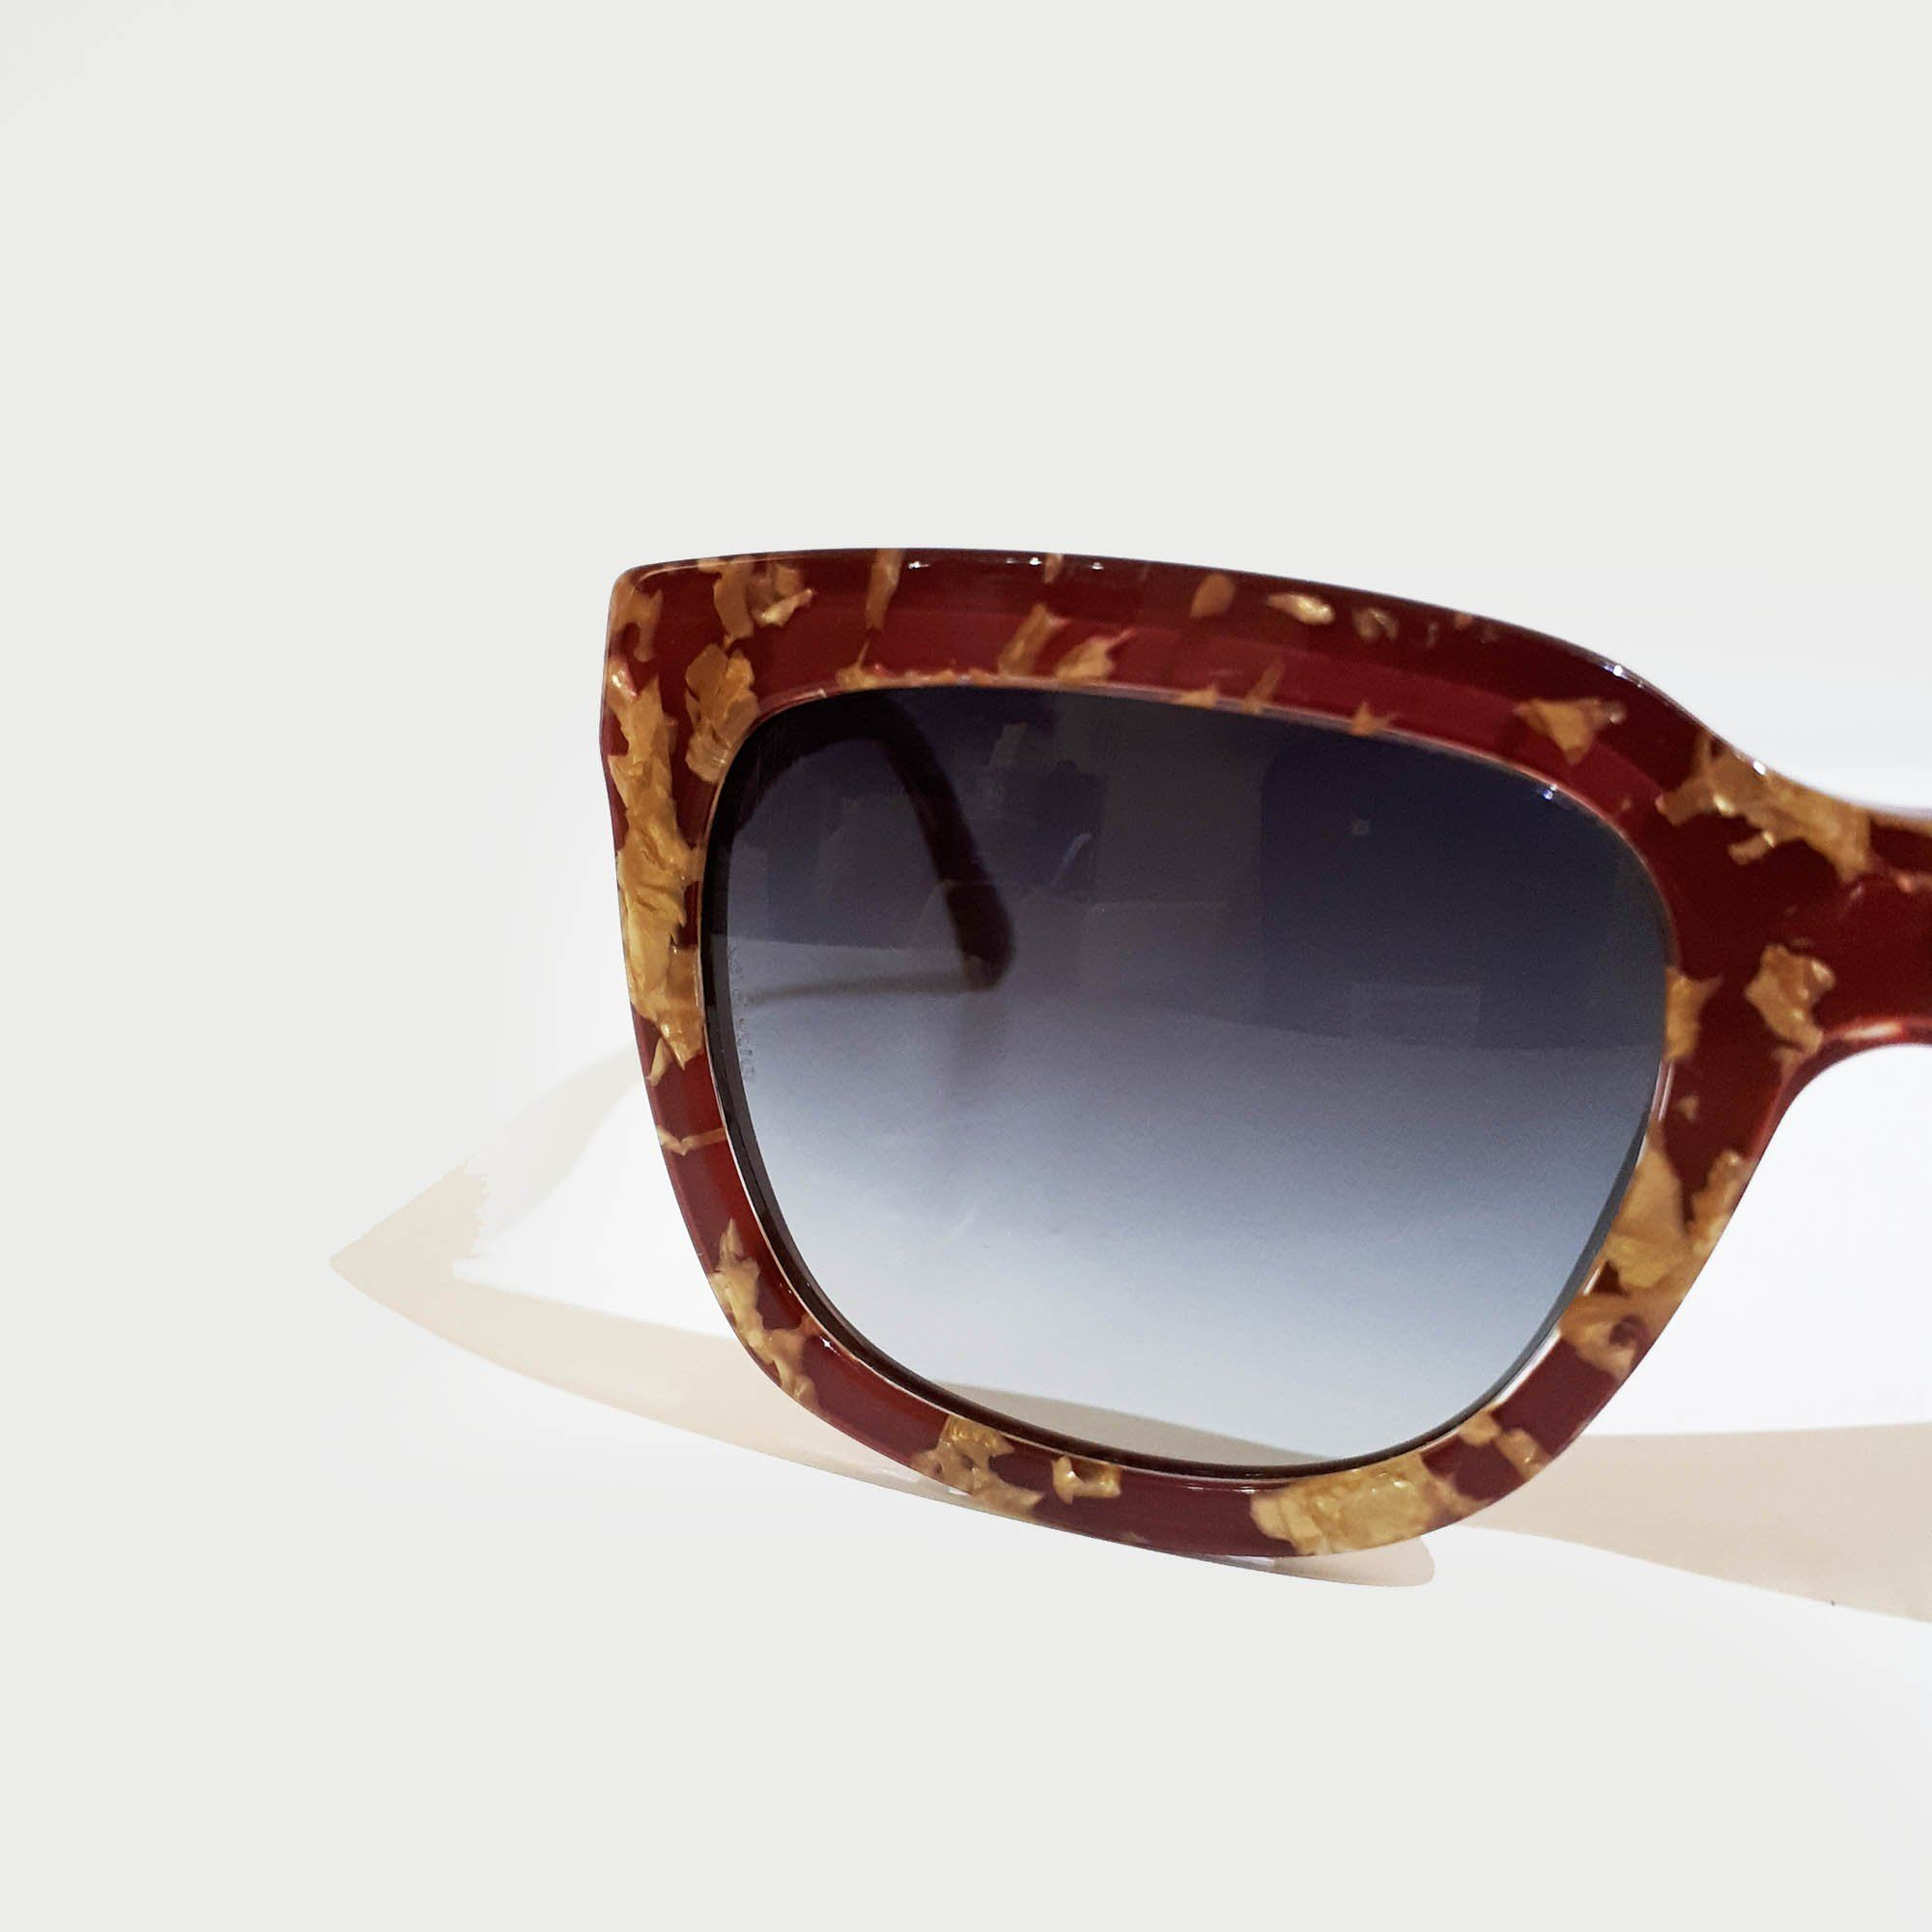 Dolce and Gabbana Gold Speckled Sunglasses